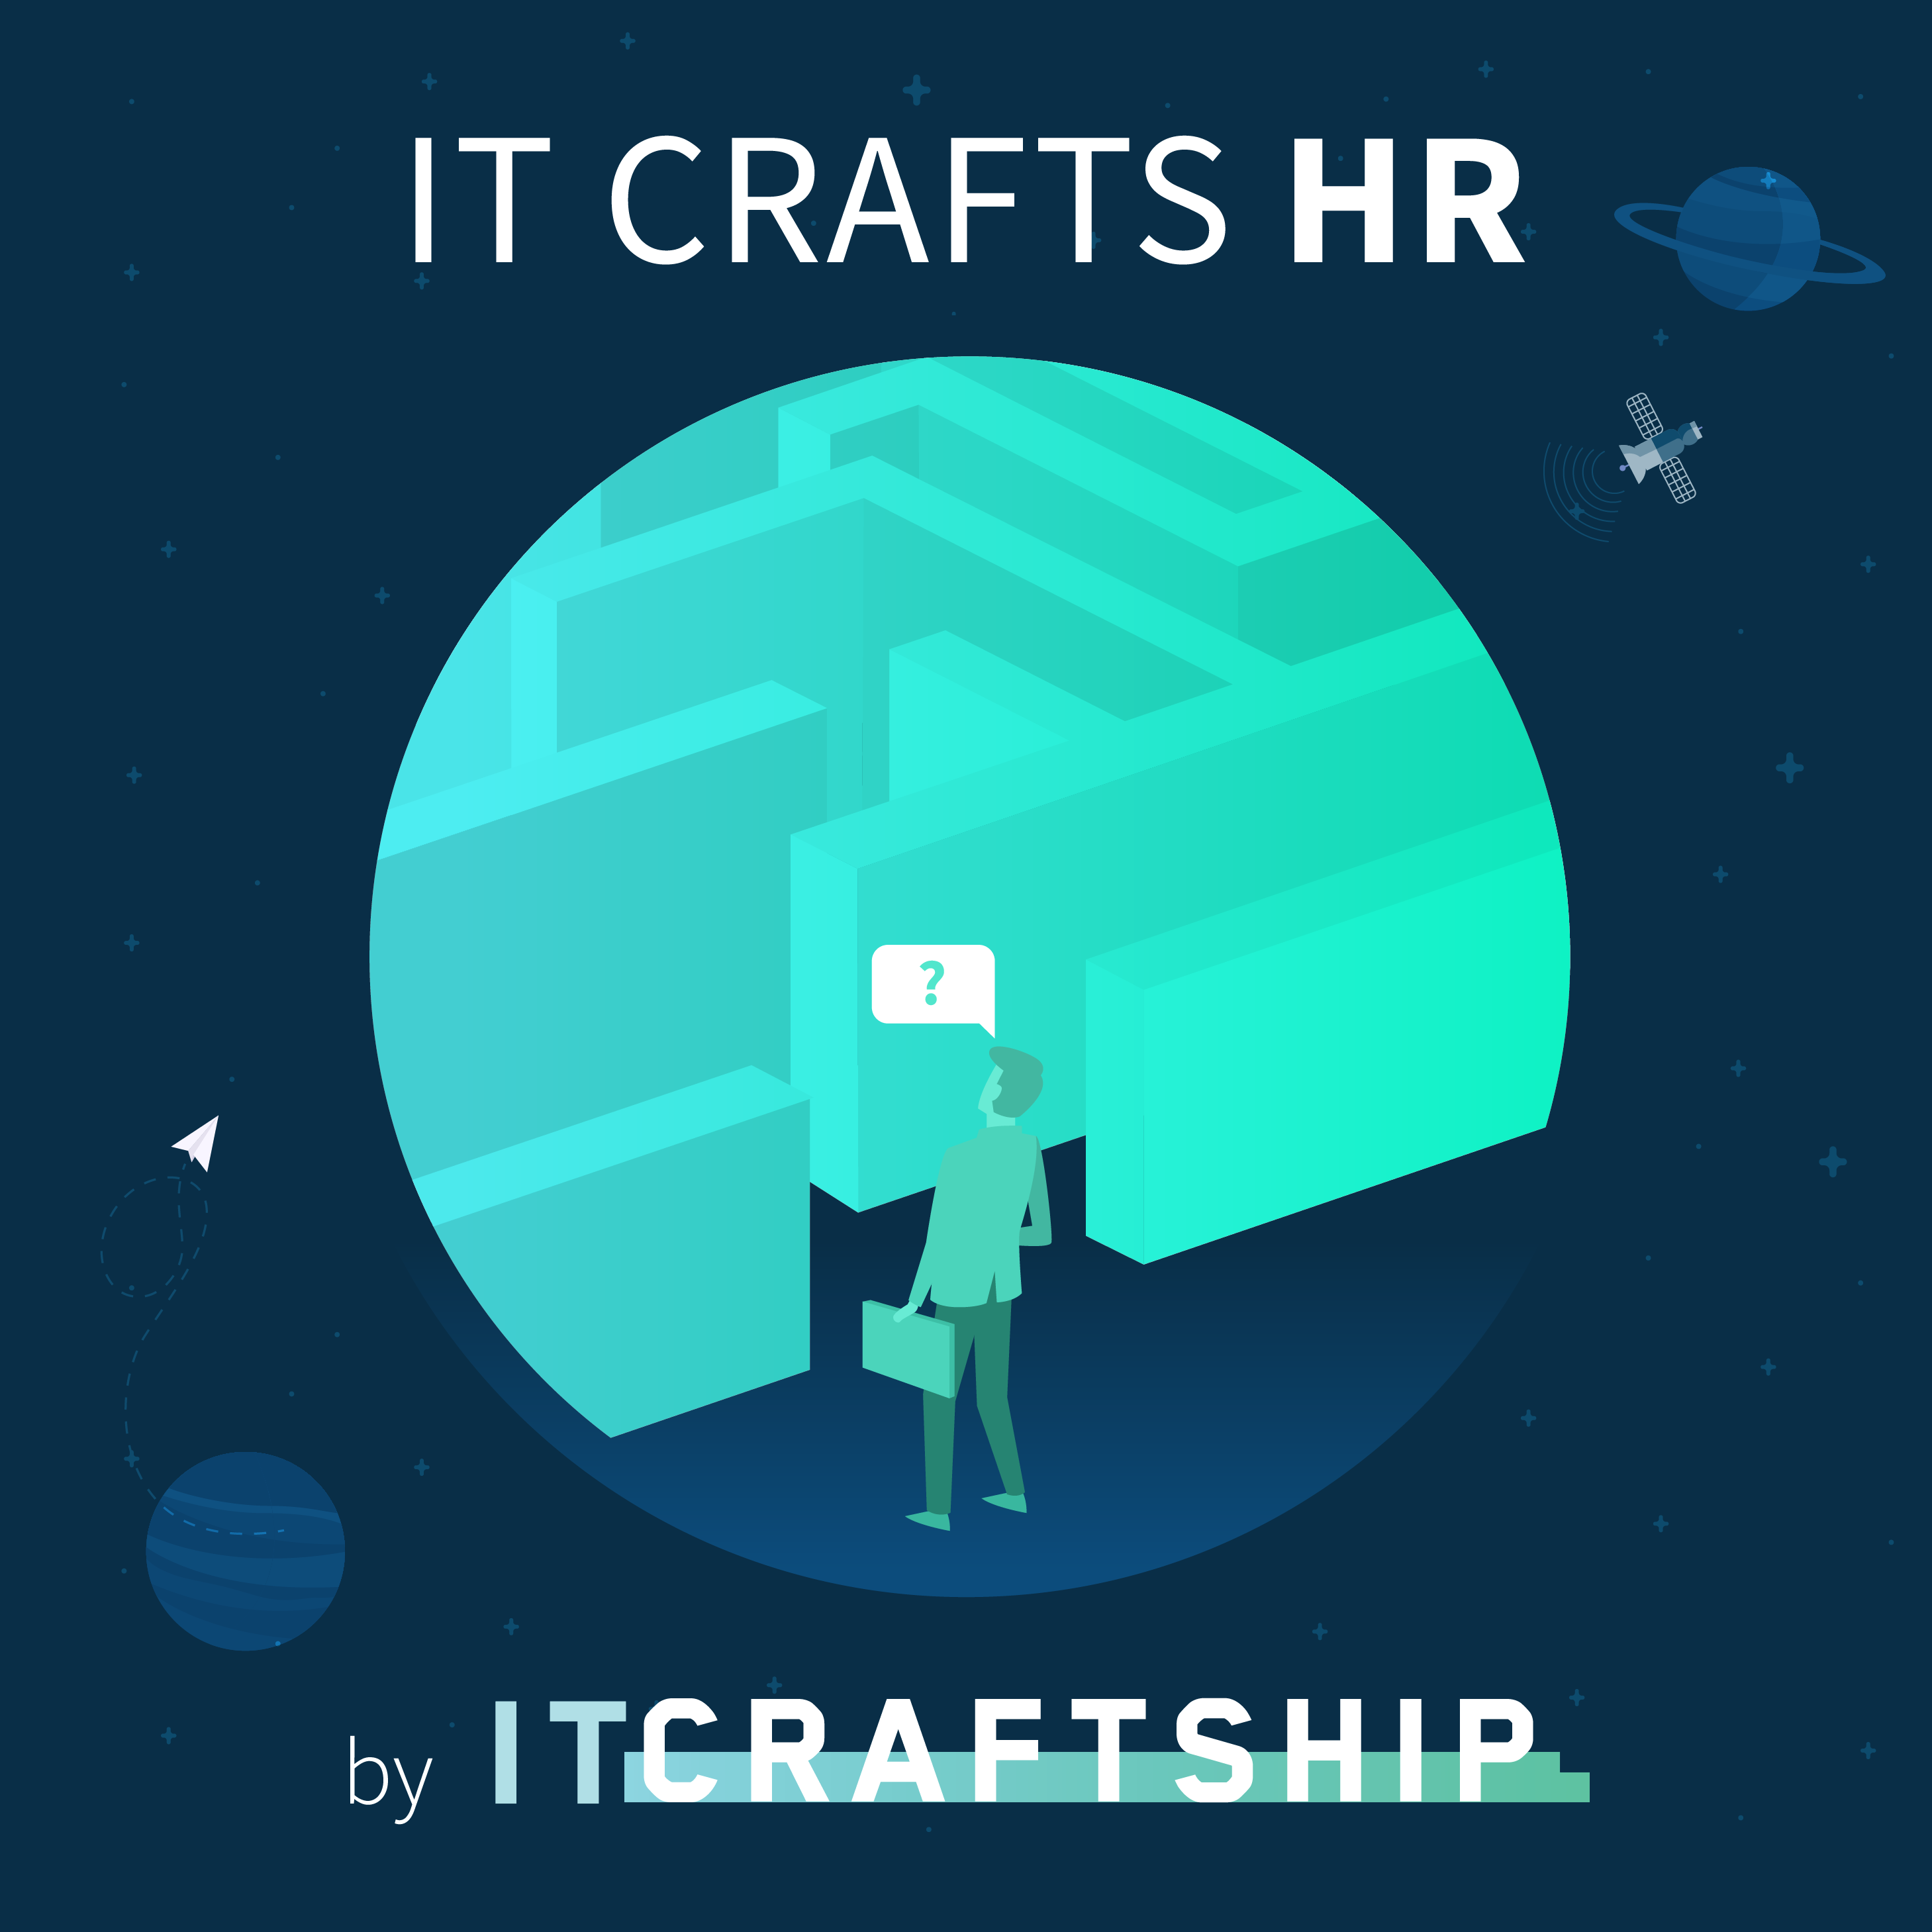 IT Crafts HR – Julia Melymbrose from Animalz